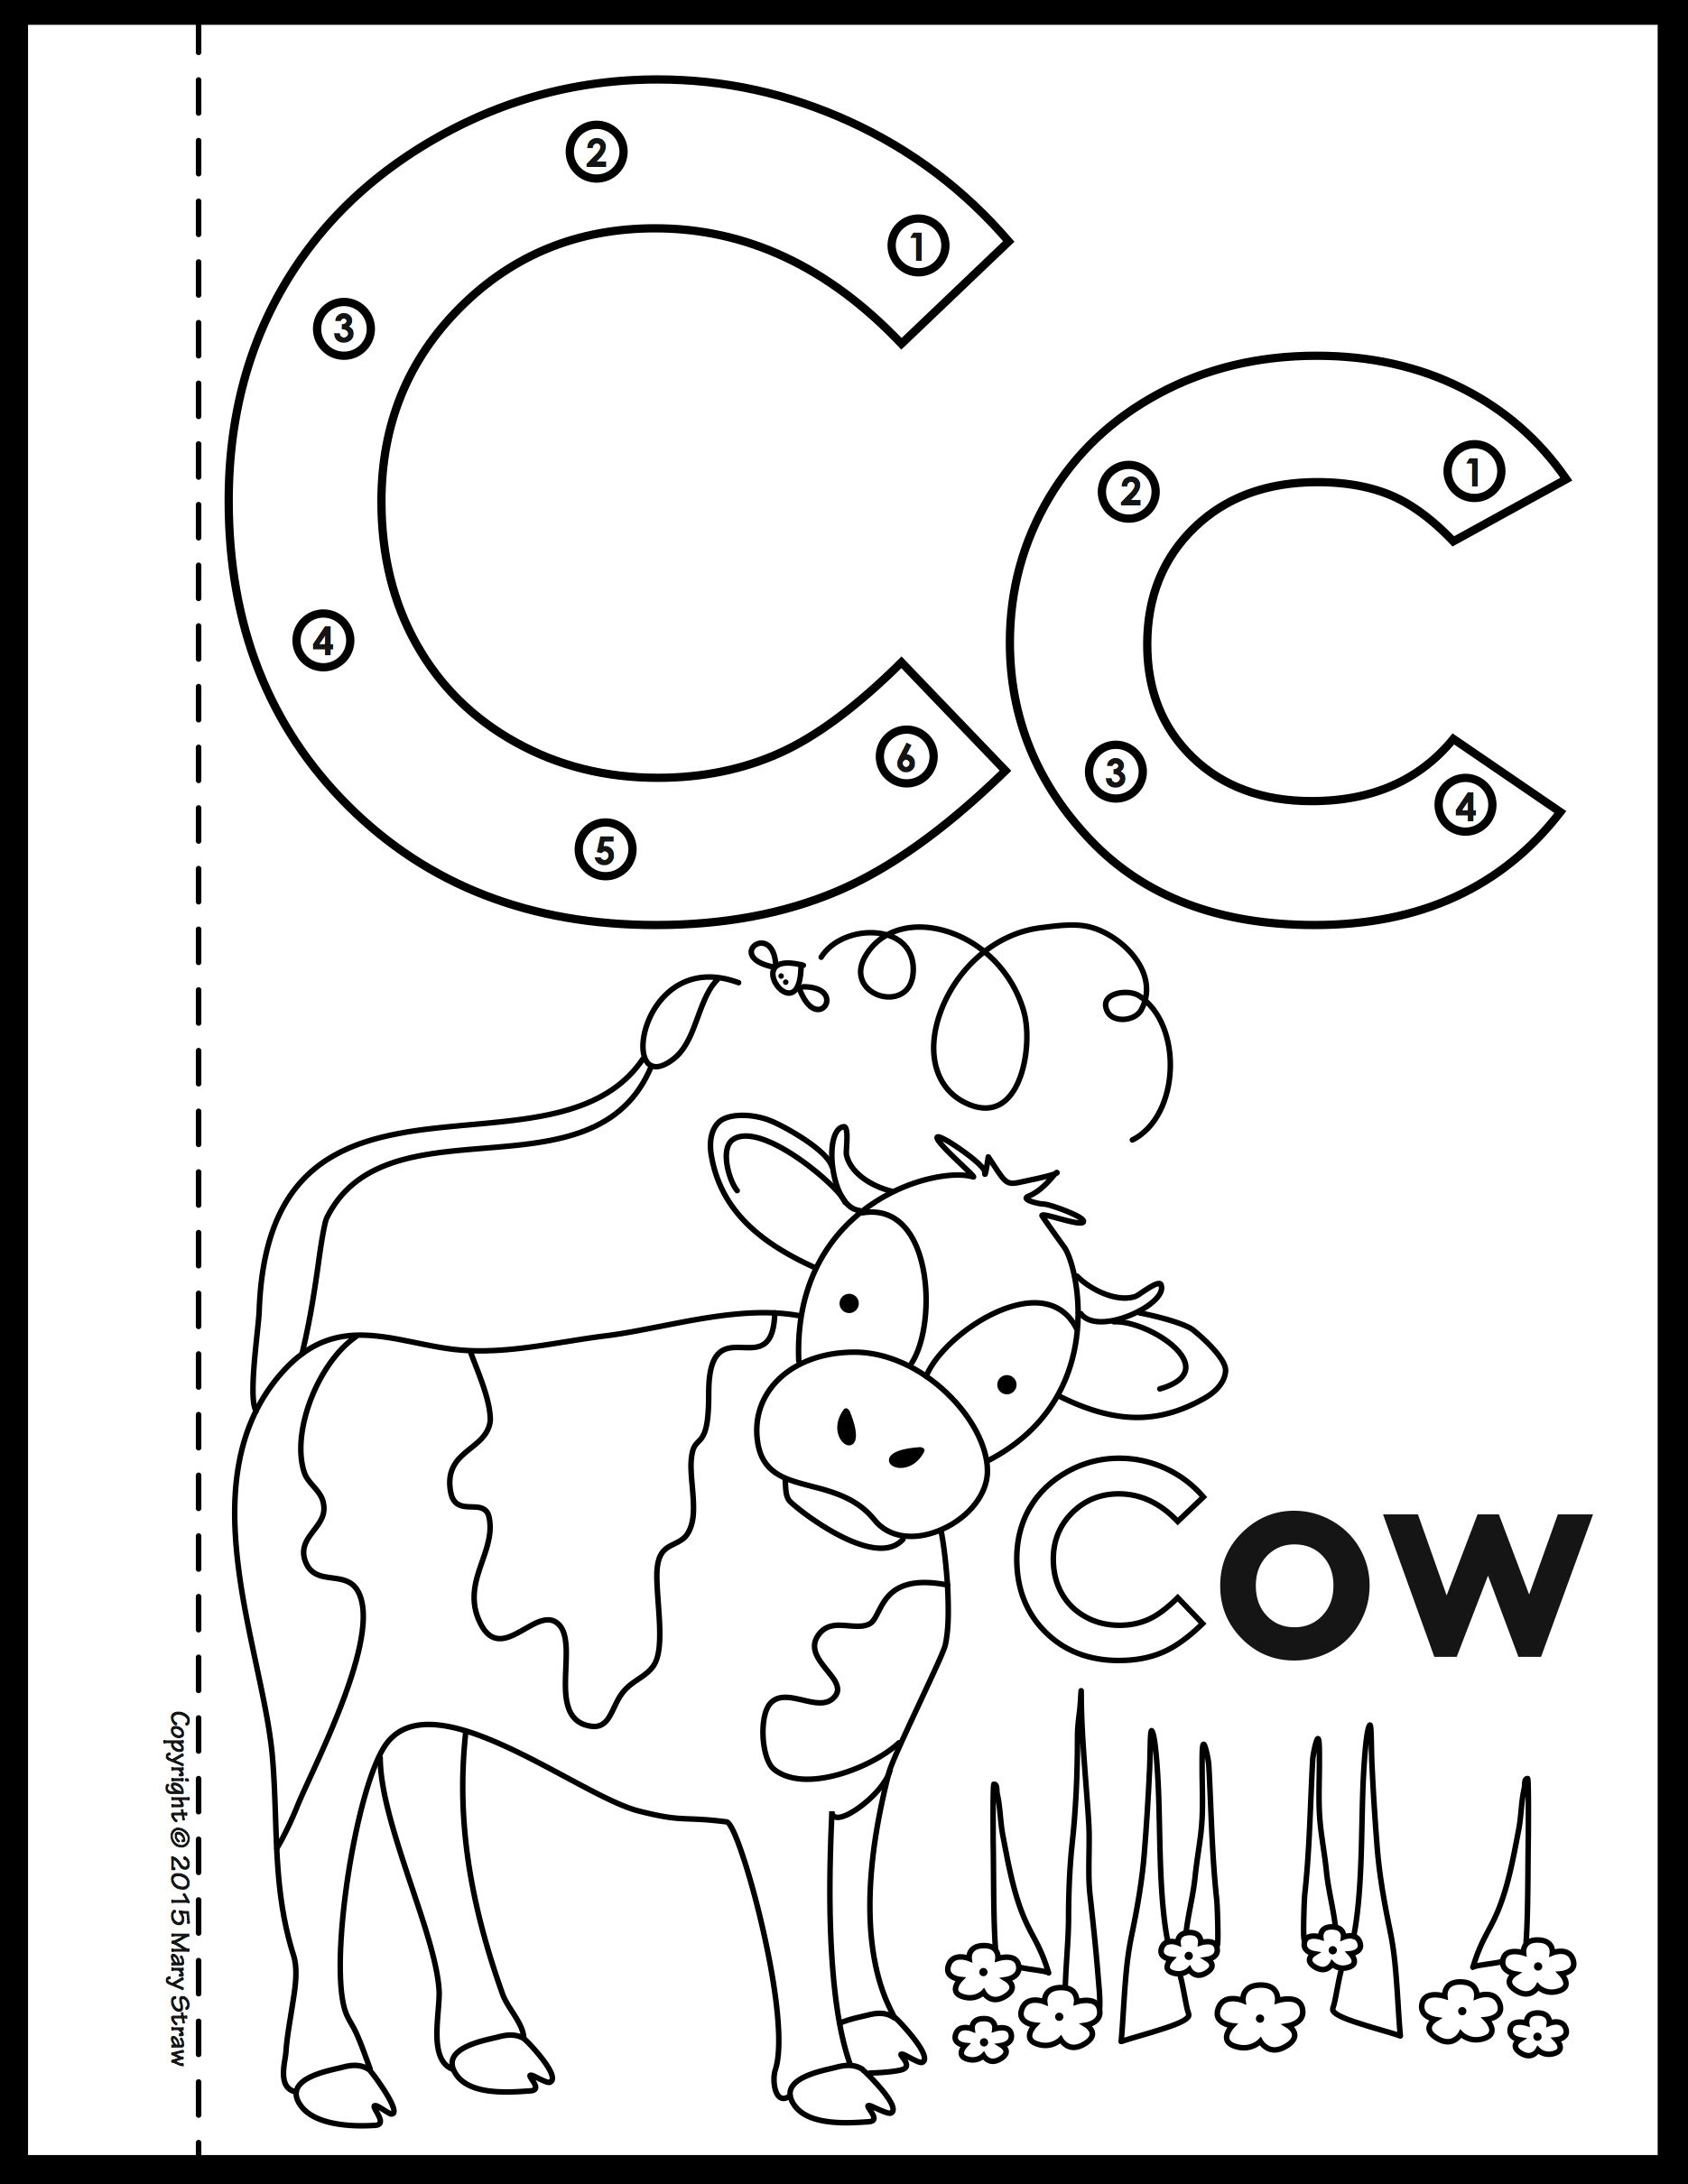 Dot-to-Dot Alphabet Book Activity Coloring Pages in 2020 ...